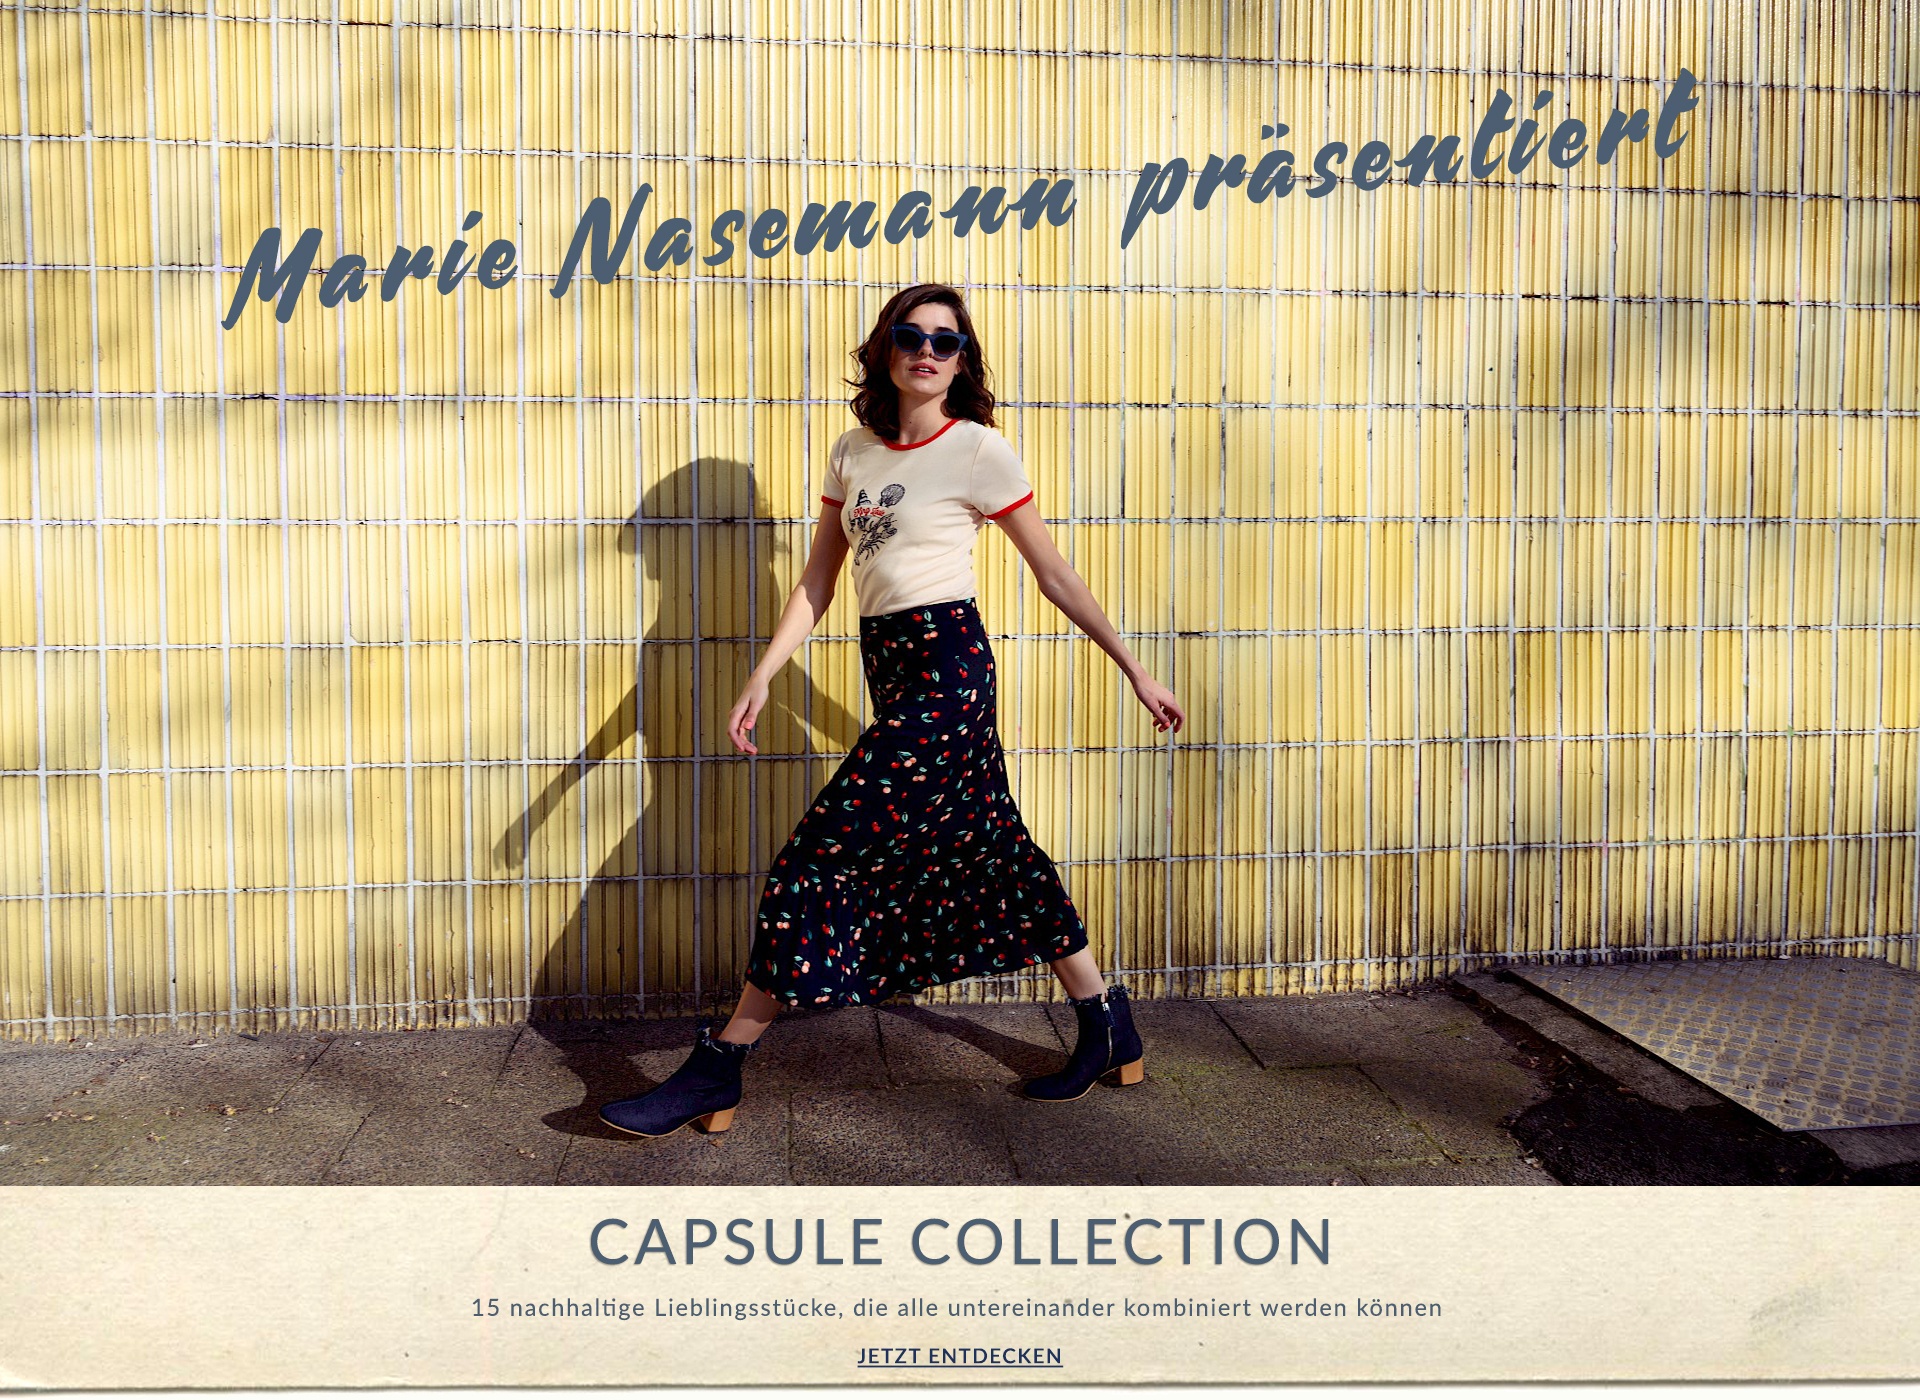 Capsule collection